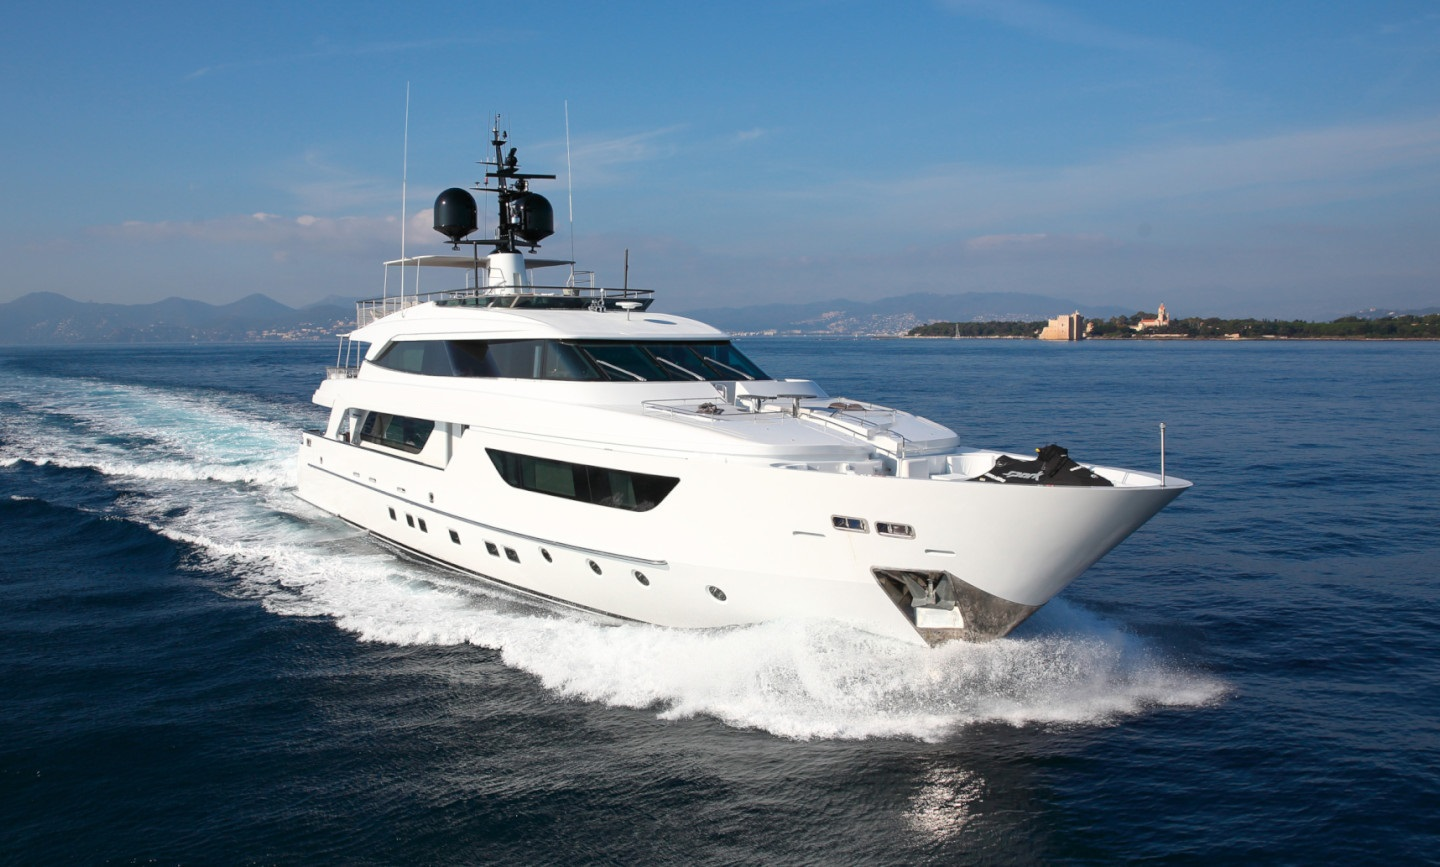 Yacht Charter Bookings with Free Cancellation and Reduced VAT due to Covid-19 Sanitary Crisis